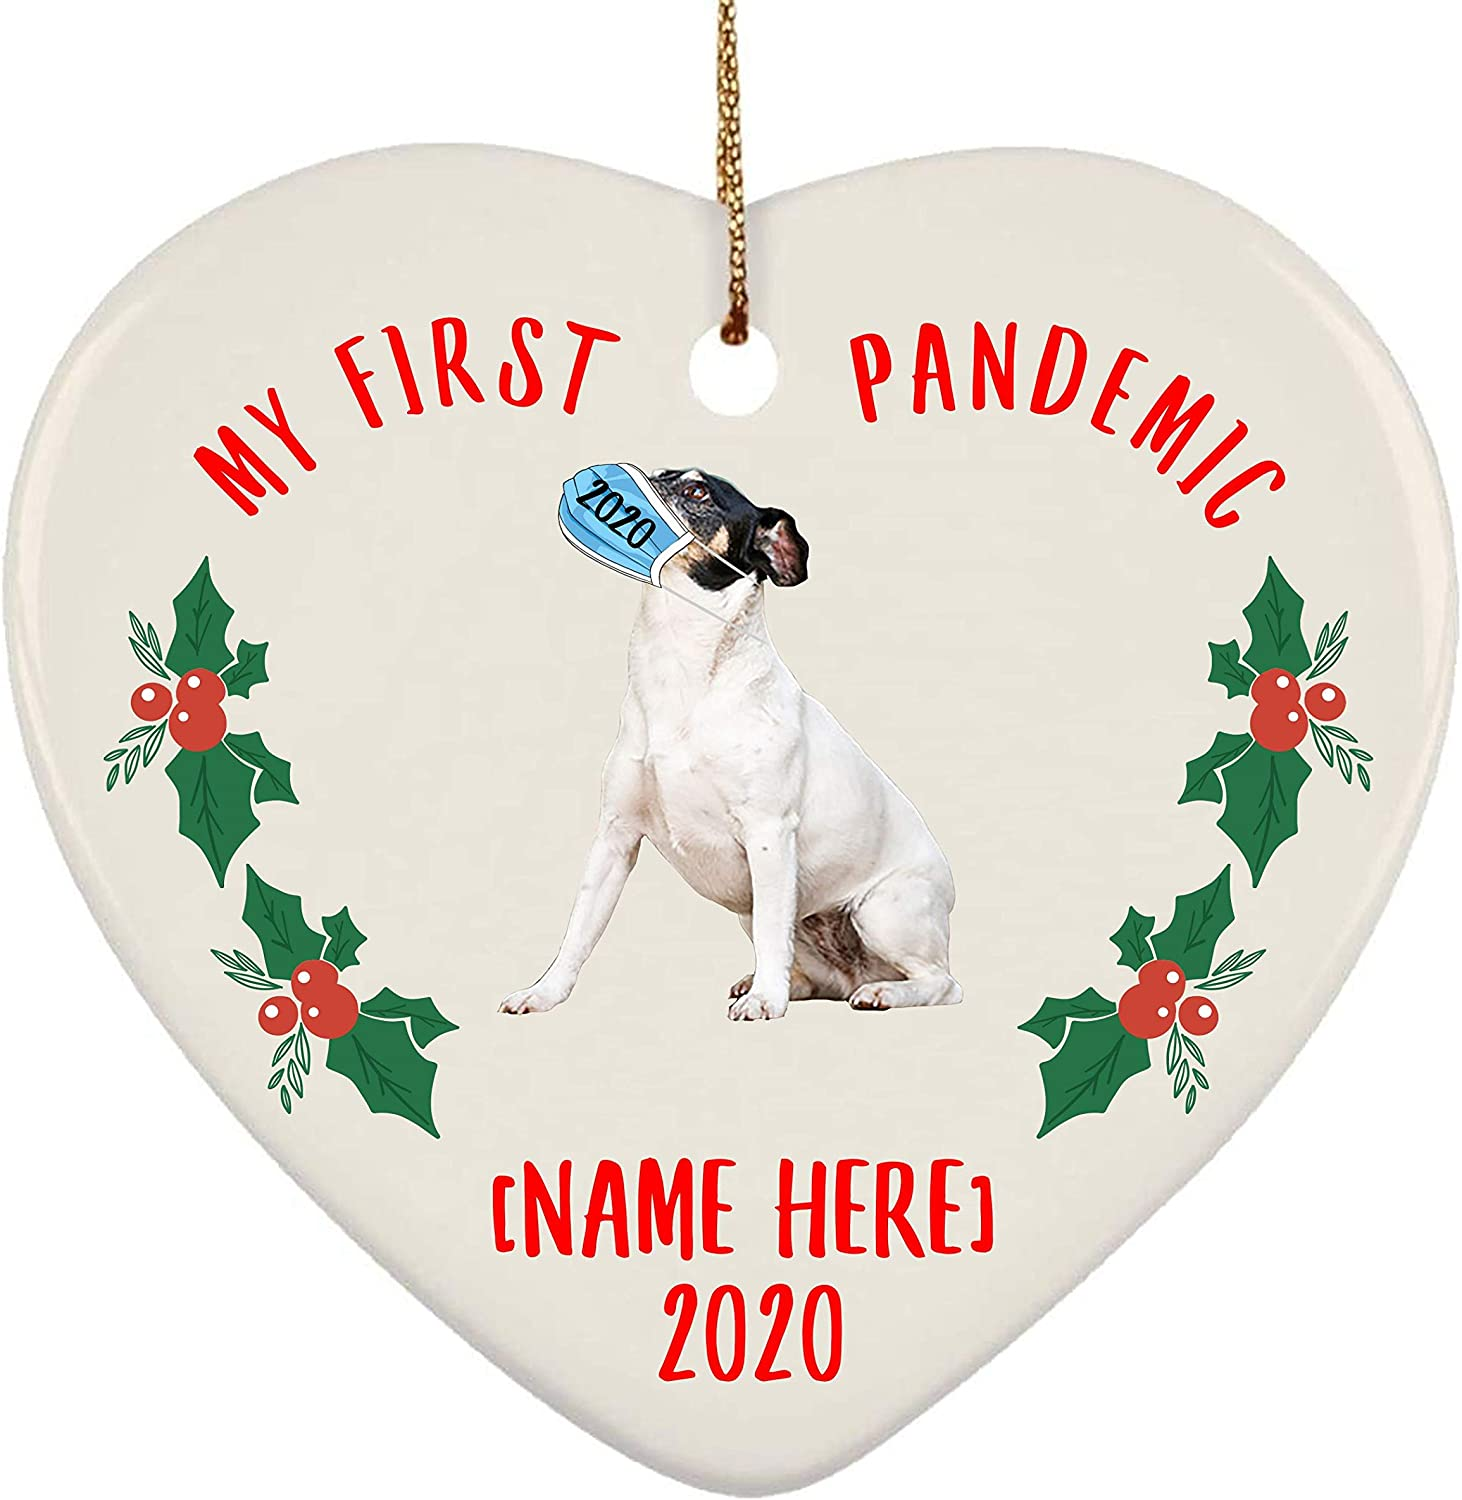 Lovesout Personalized Name Rat Terrier White My First Pandemic Christmas 2020 Heart Ornament